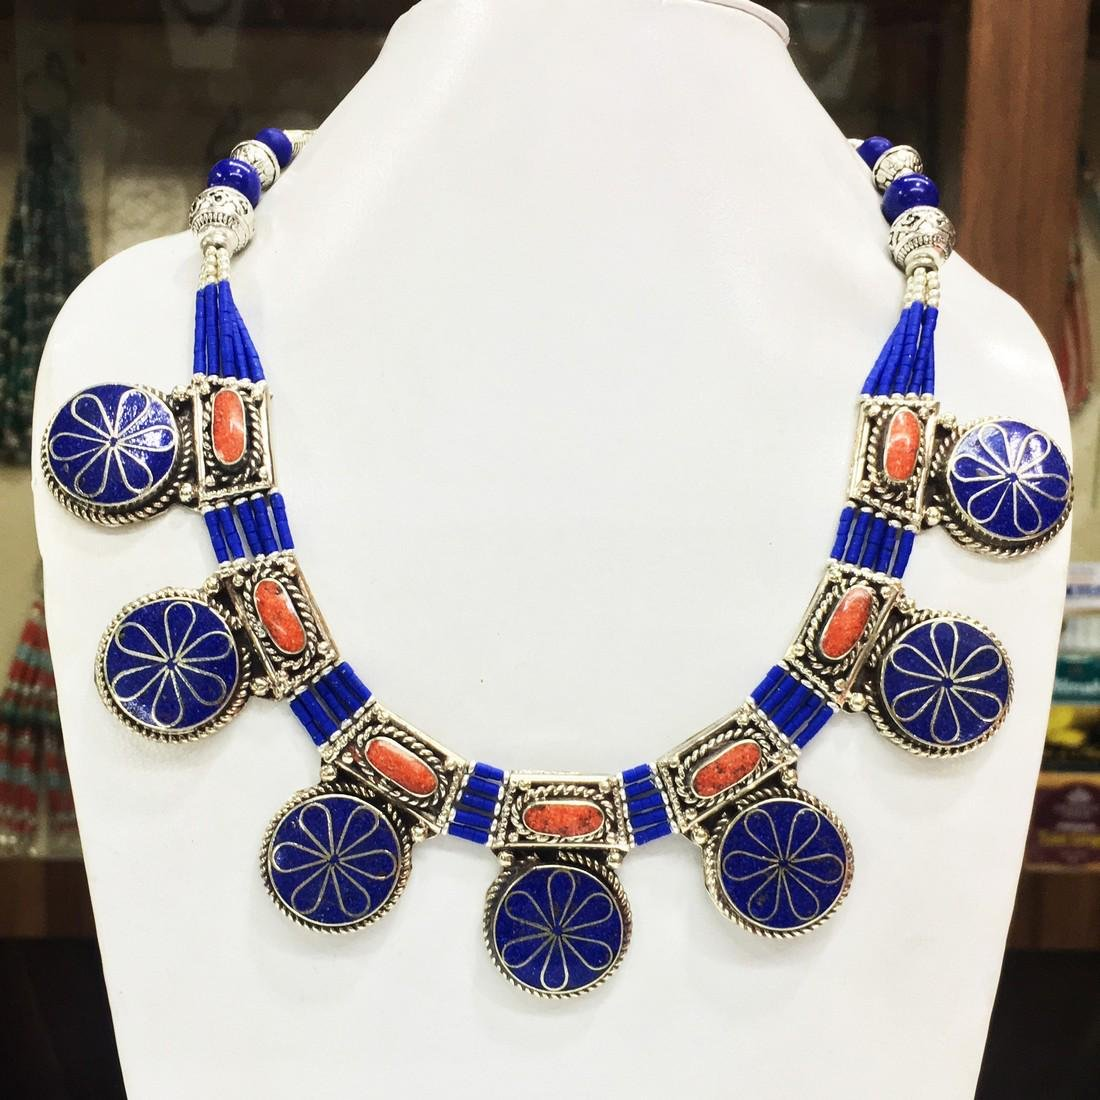 Coral & Lapis Handmade Necklace